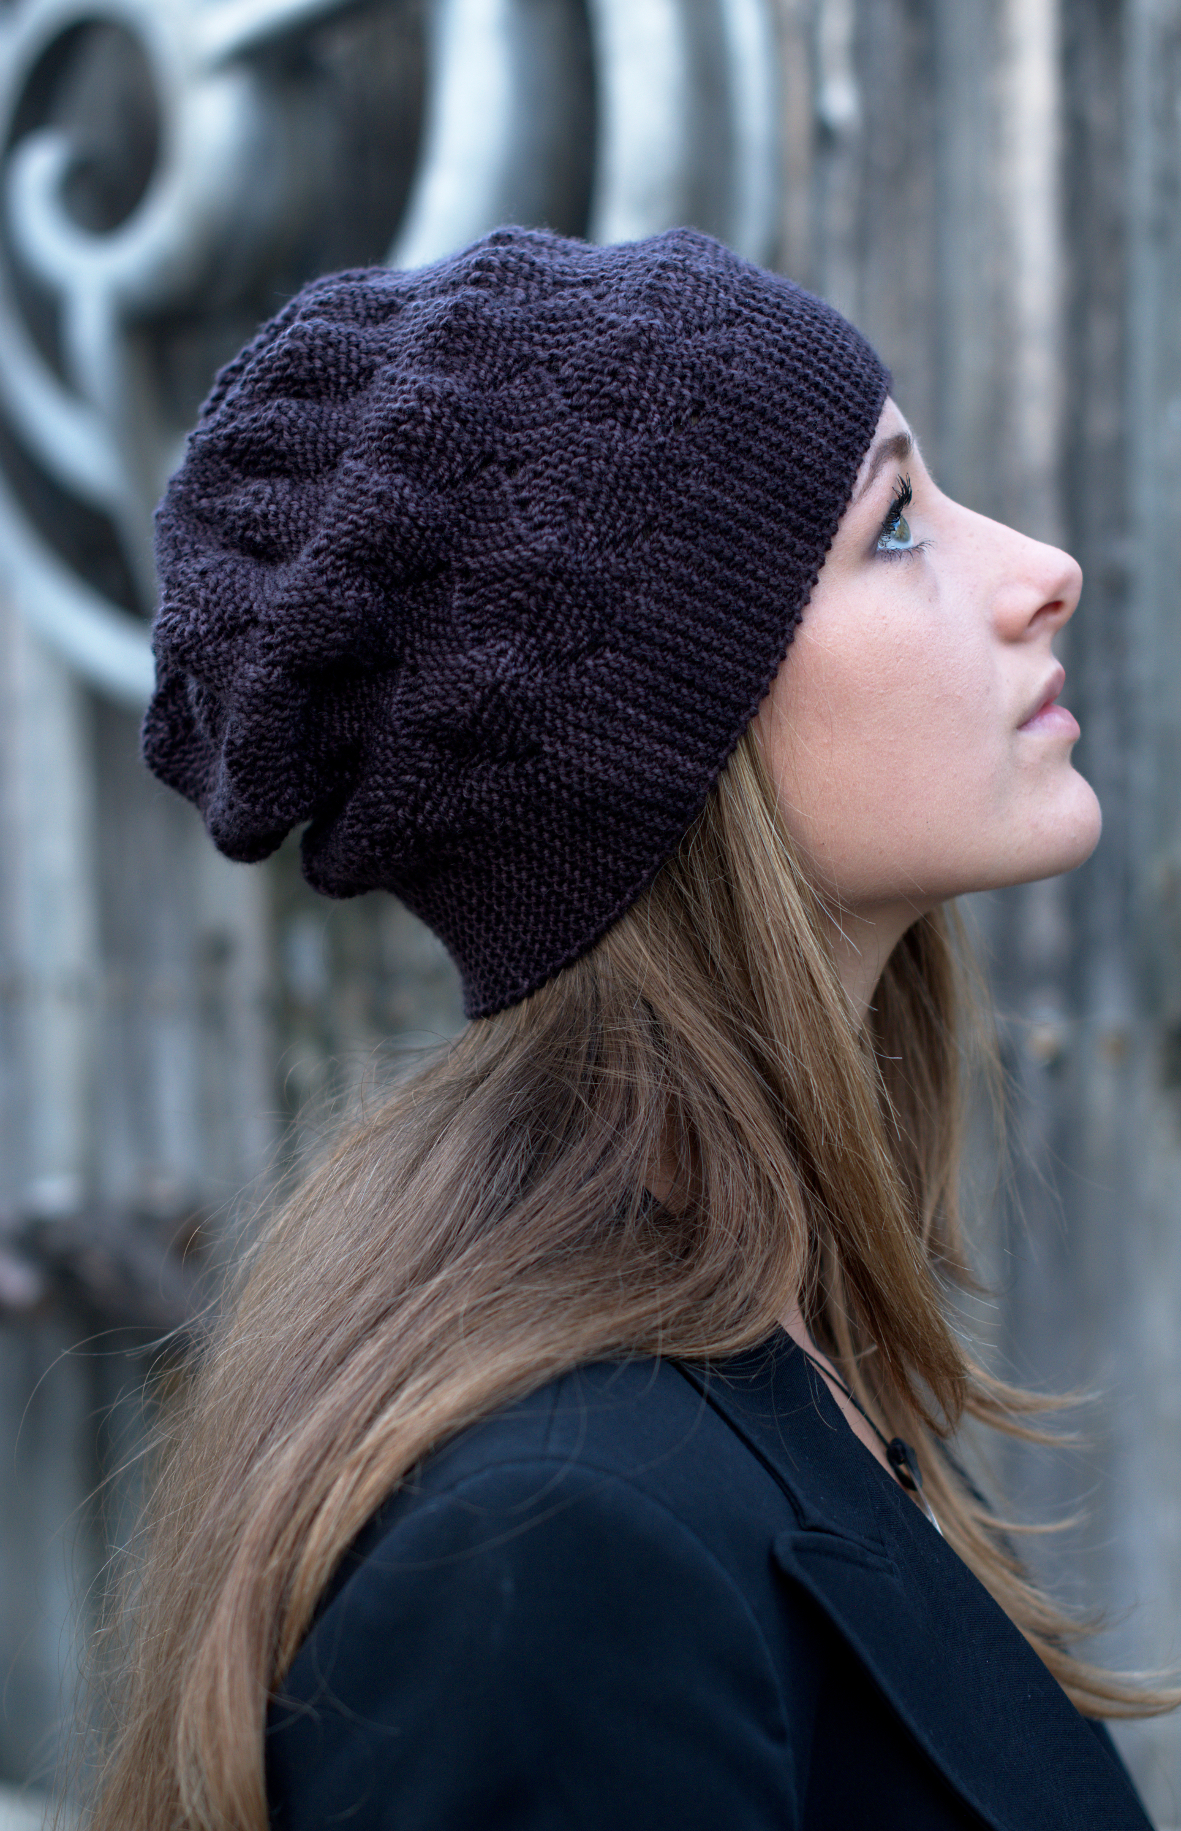 Sagitta sideways knit texture Hat knitting pattern